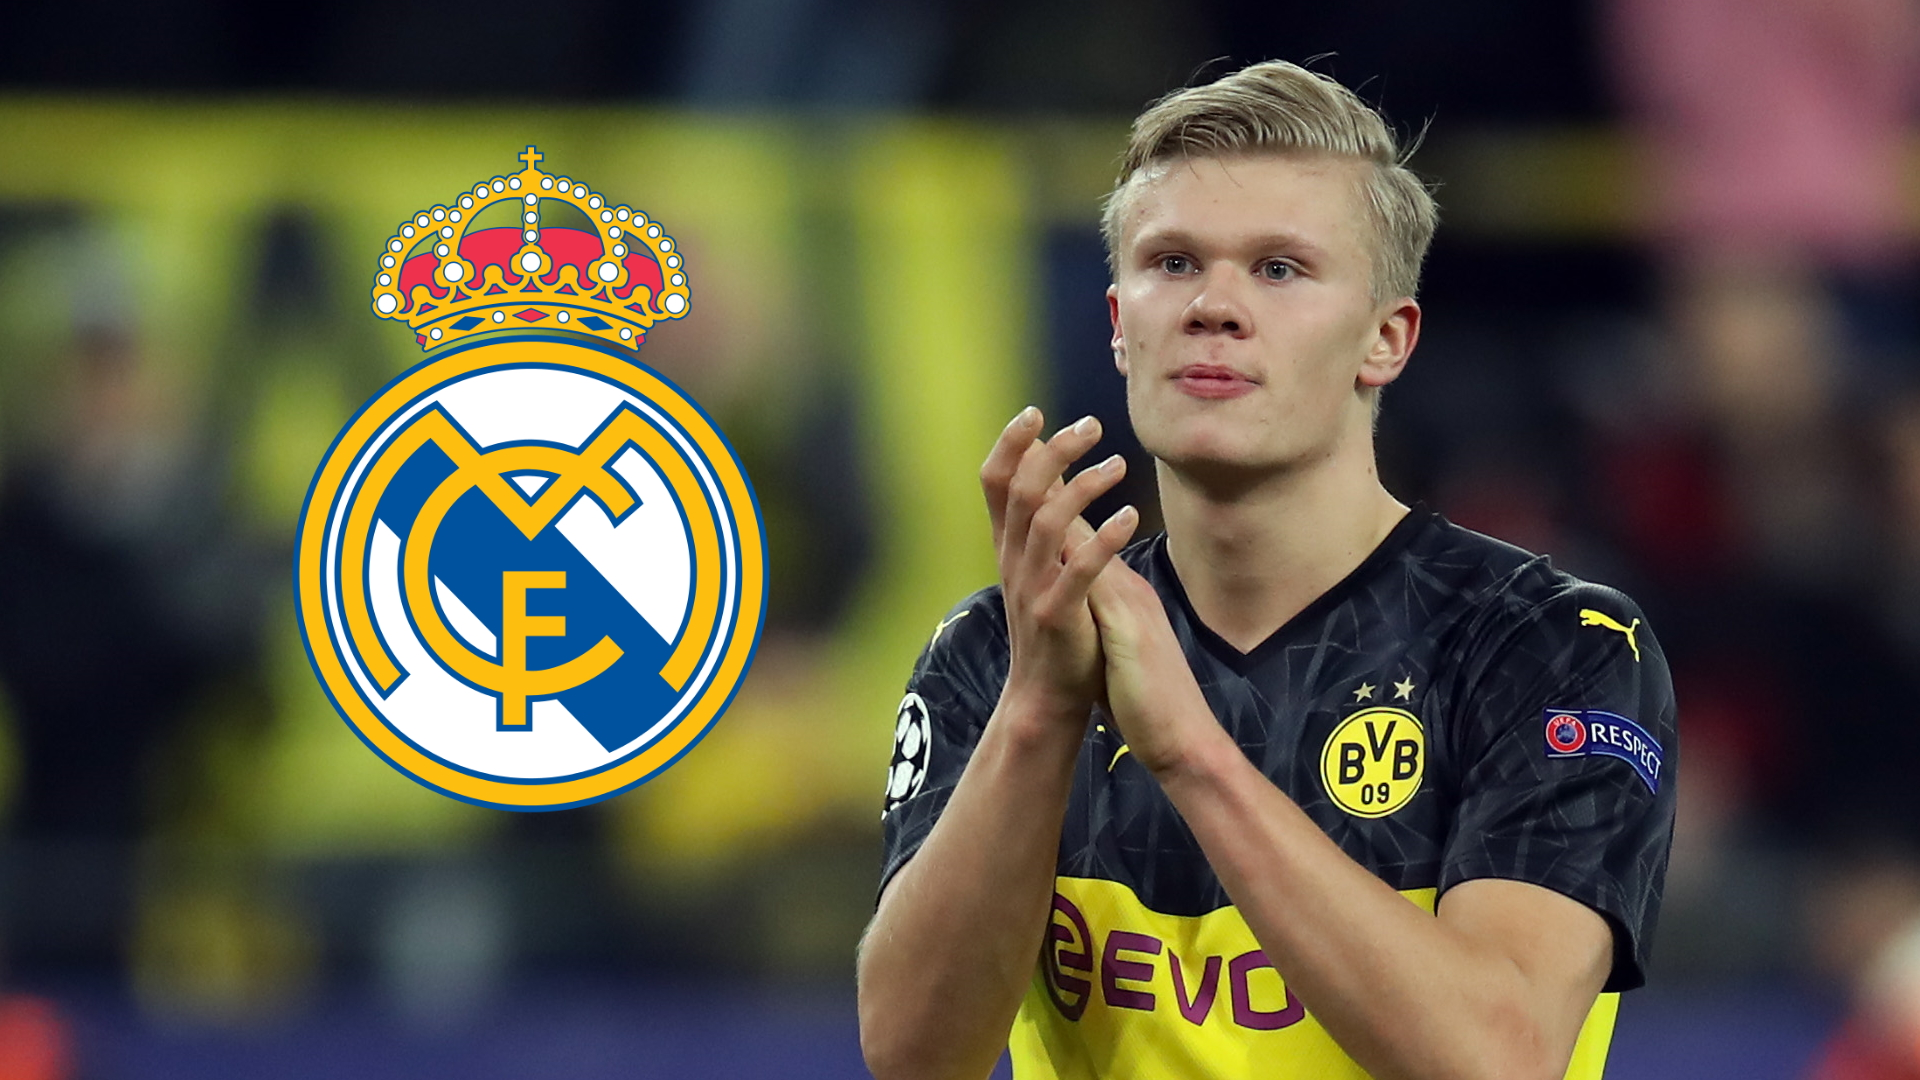 'Haaland is ready to play for Real Madrid' - Dortmund striker backed to 'succeed' at Santiago Bernabeu